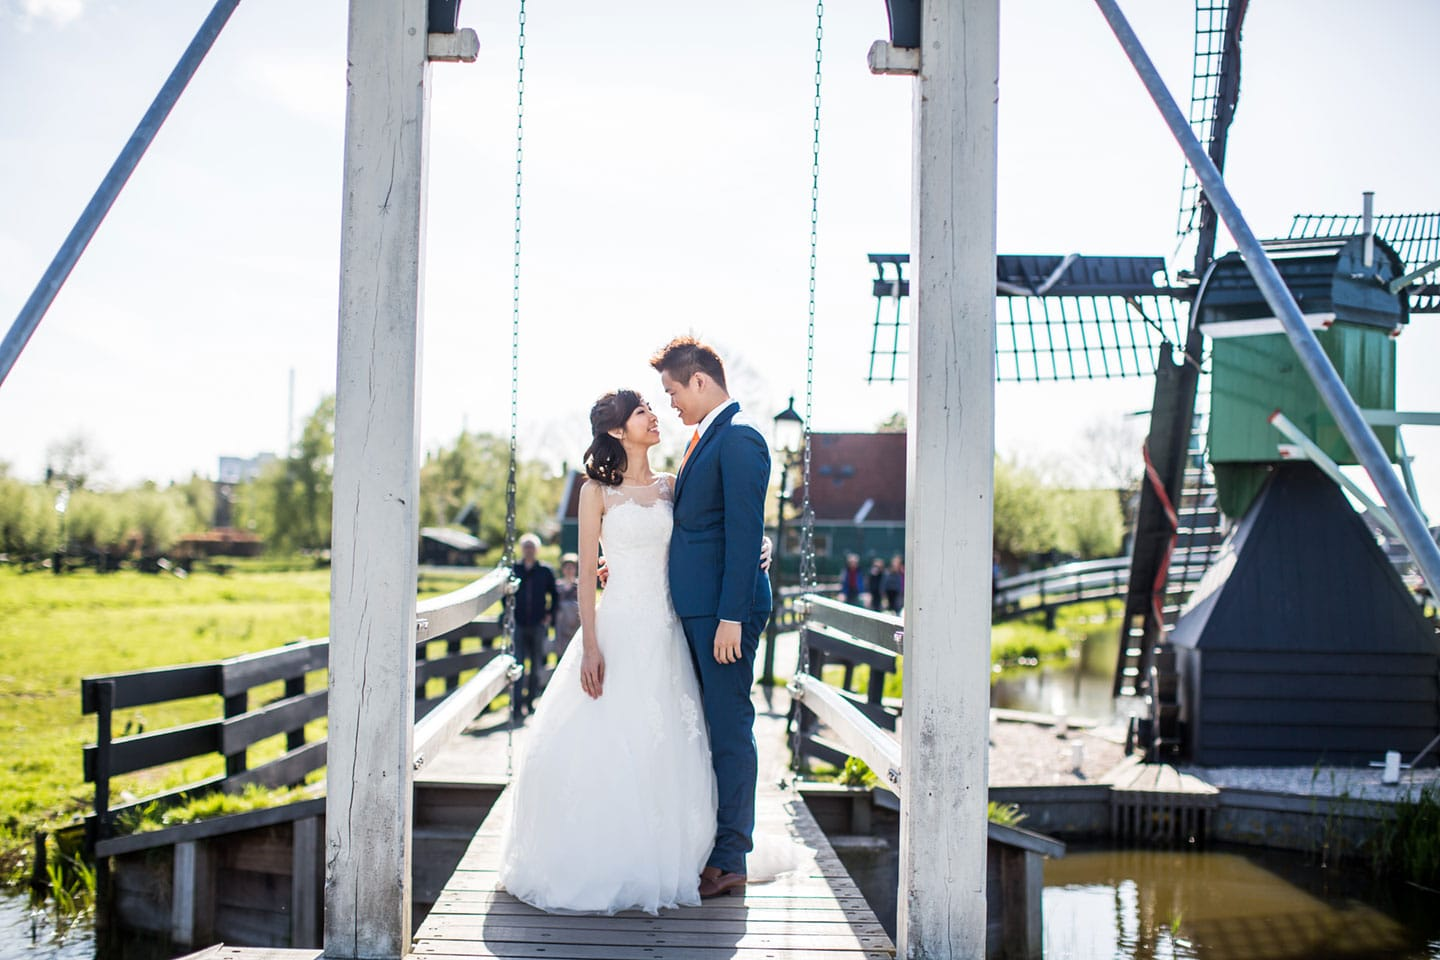 17-pre-wedding-photoshoot-Zaanse-Schans